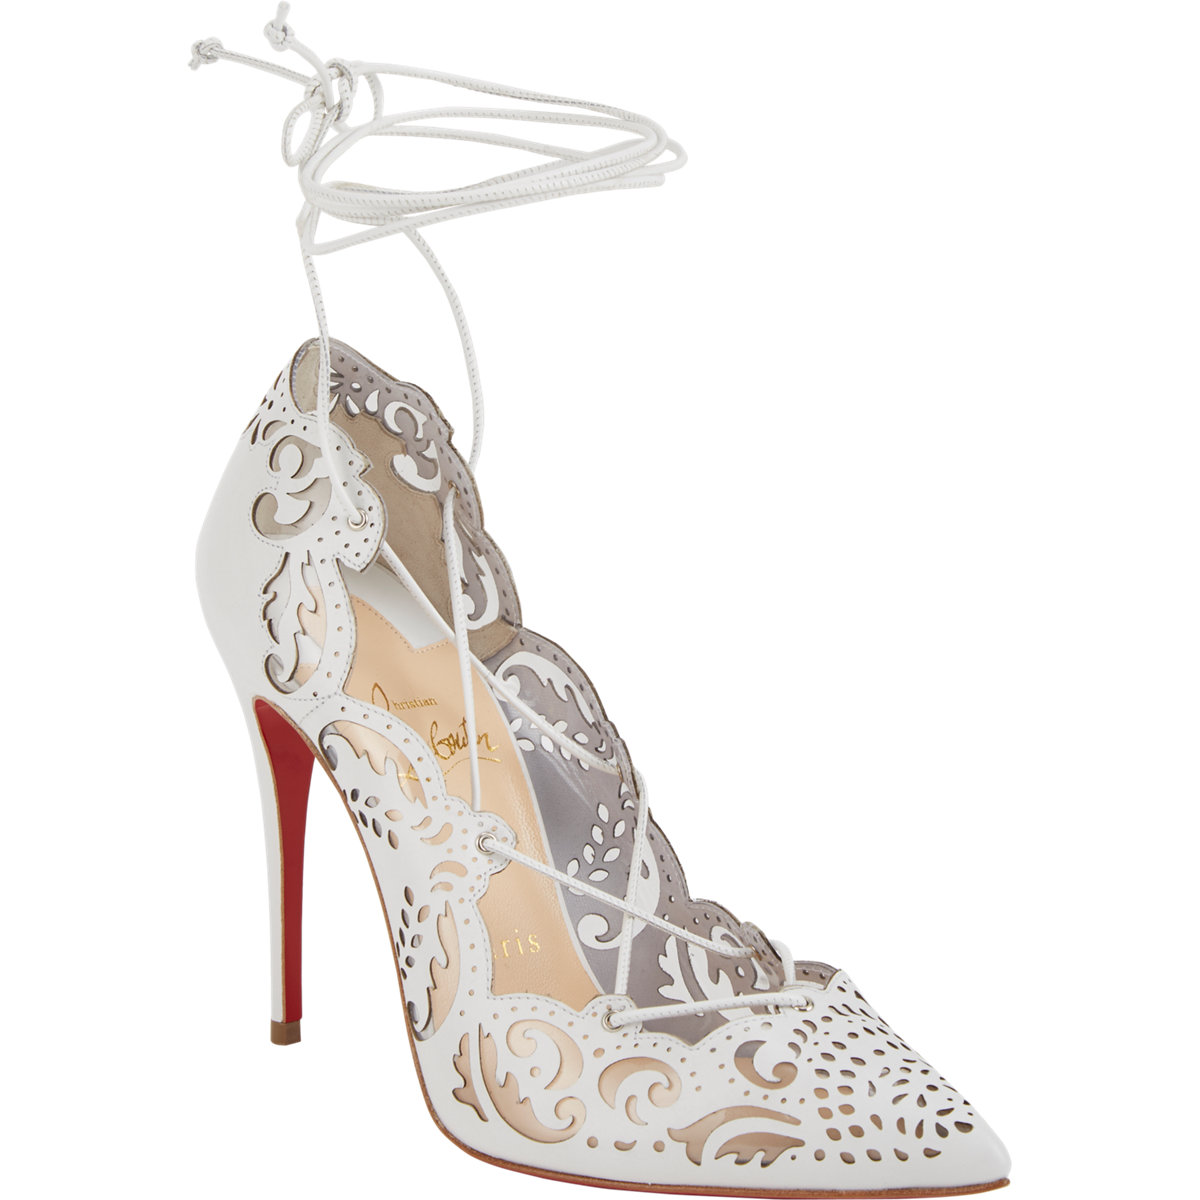 impera laser cut christian louboutin pumps